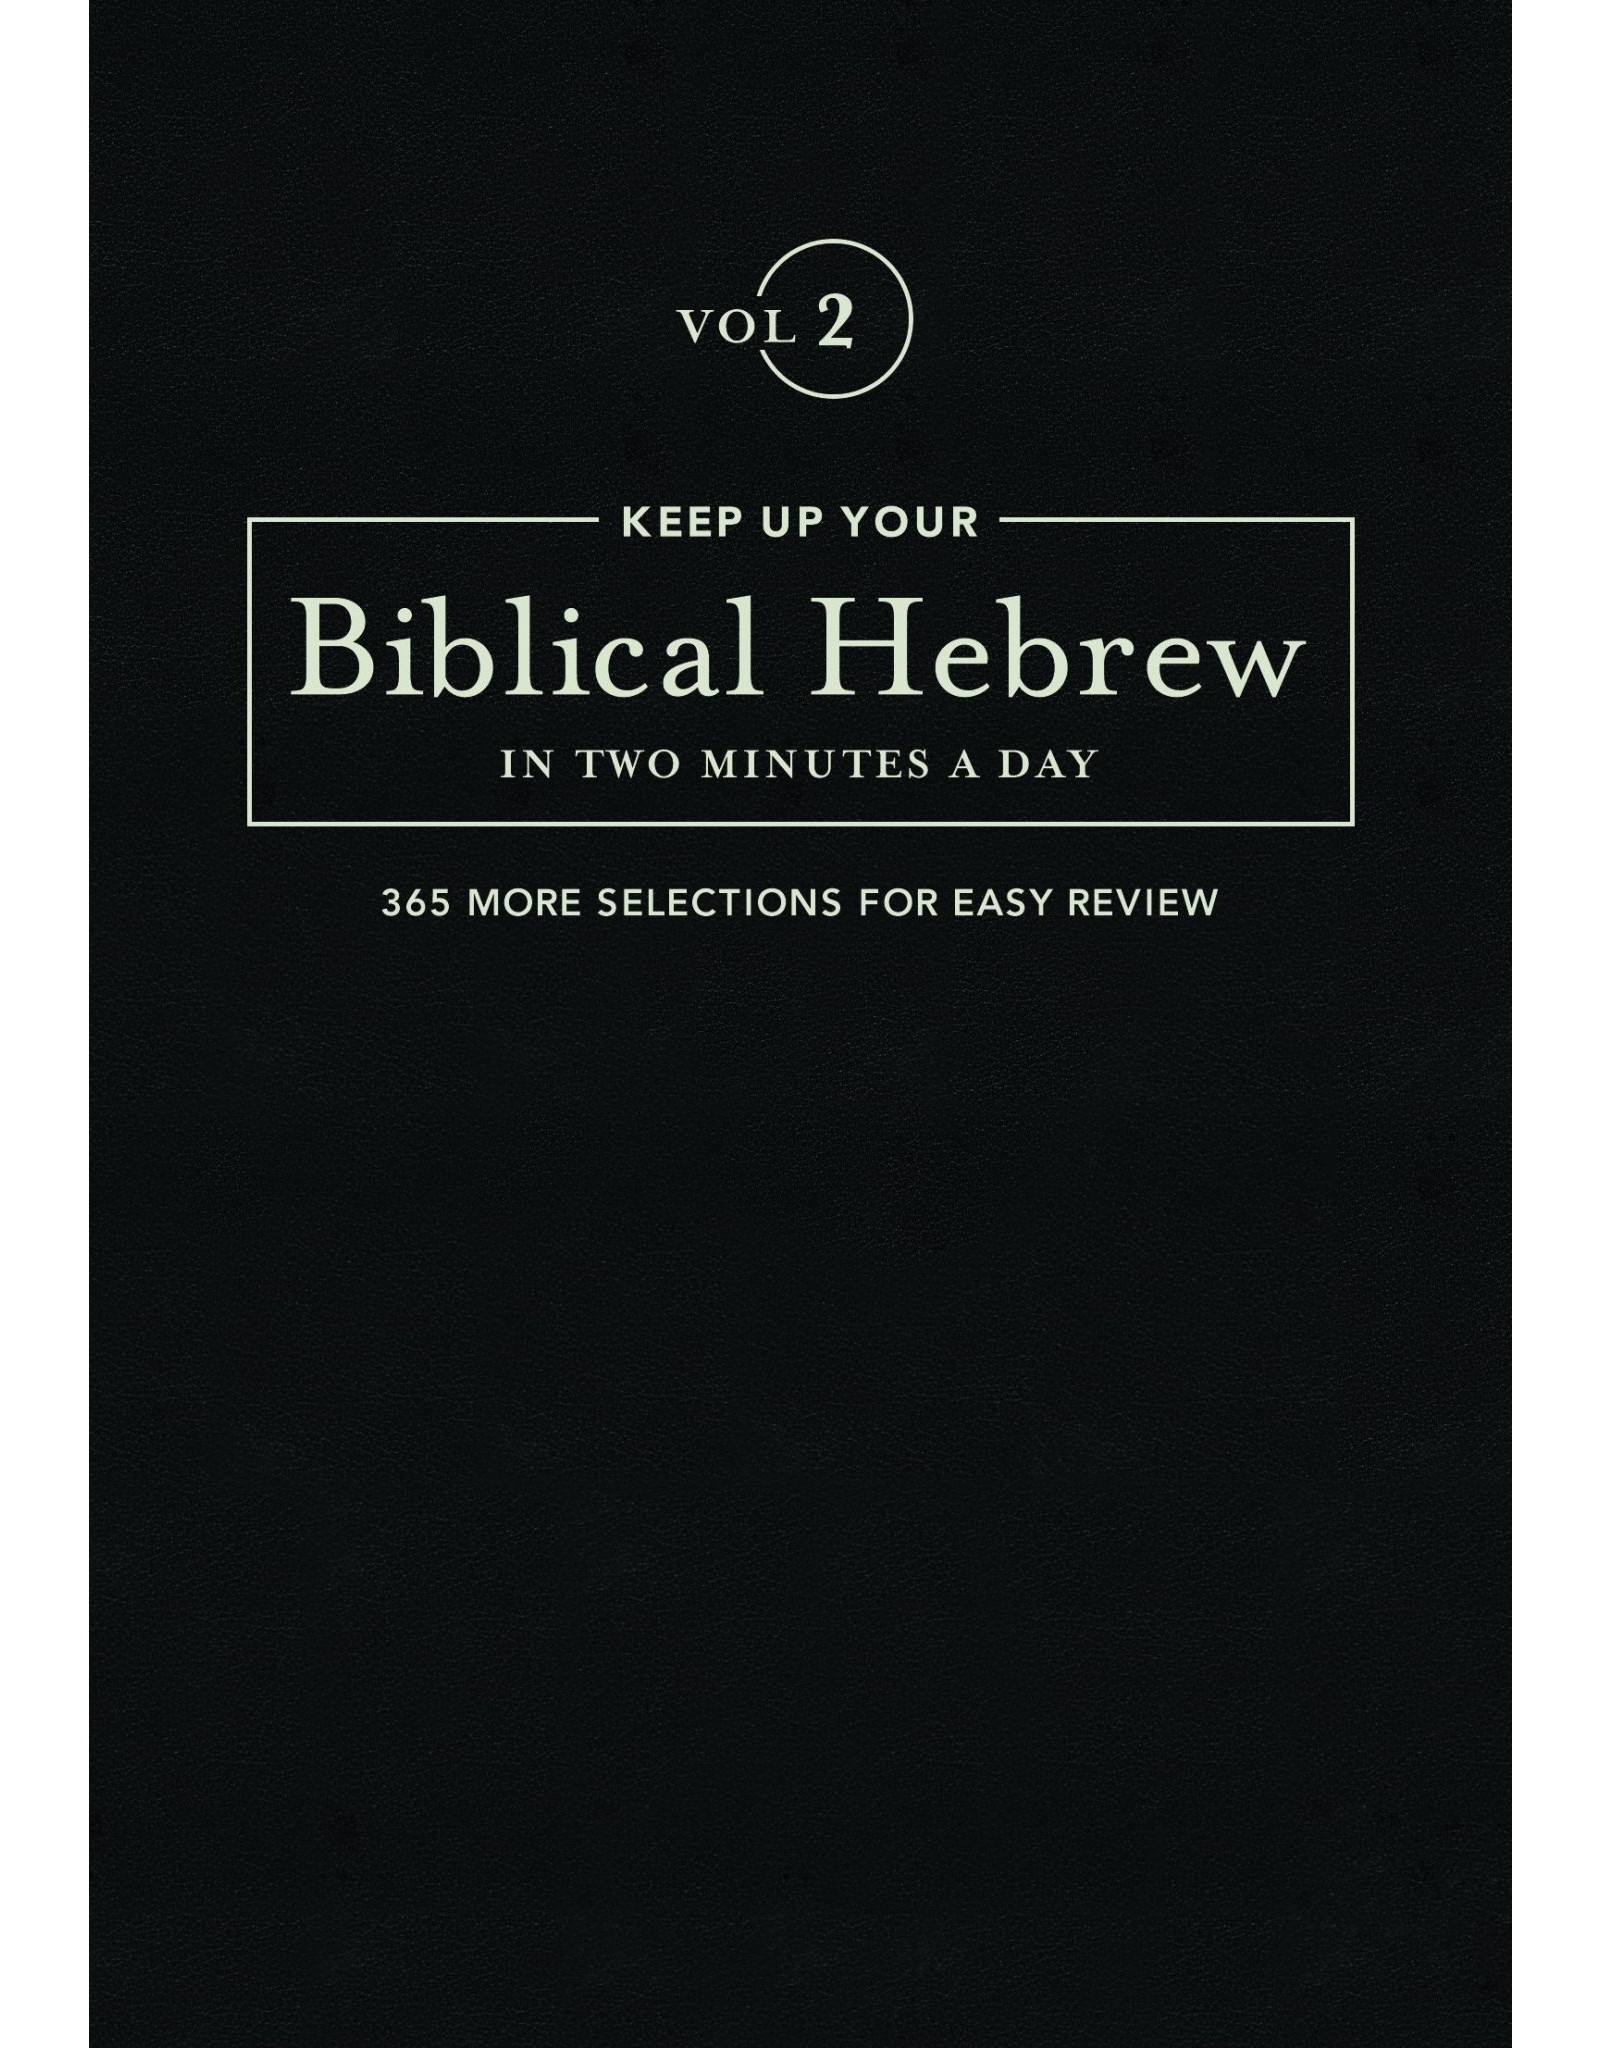 Hendrickson Keep Up Your Biblical Hebrew in Two Minutes a Day (Vol. 2)